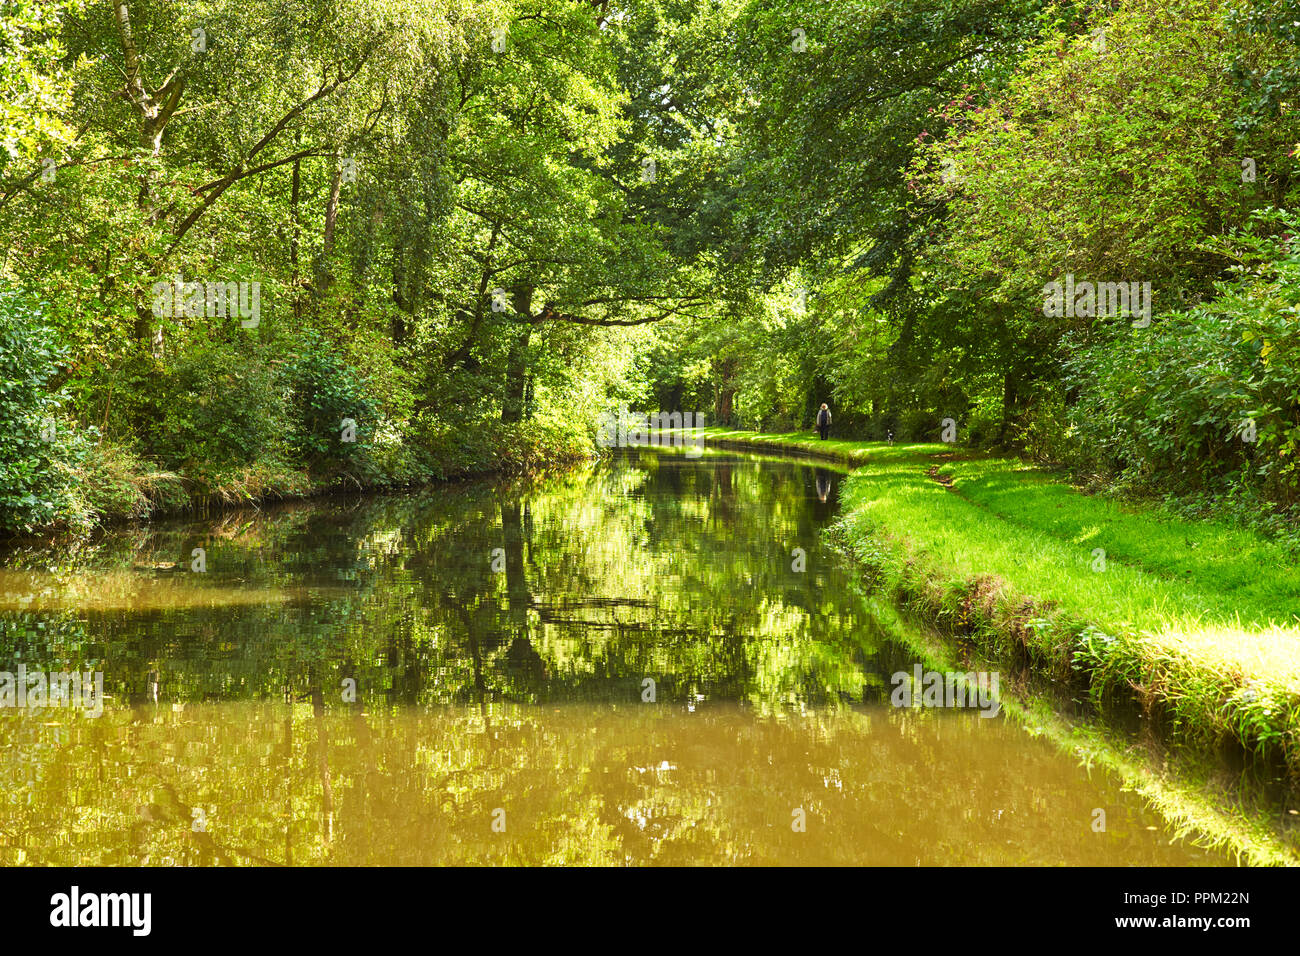 Lush greens of grass, trees and canal with man walking dog in distance on towpath of Shropshire Union canal near Penkridge, Staffordshire - Stock Image